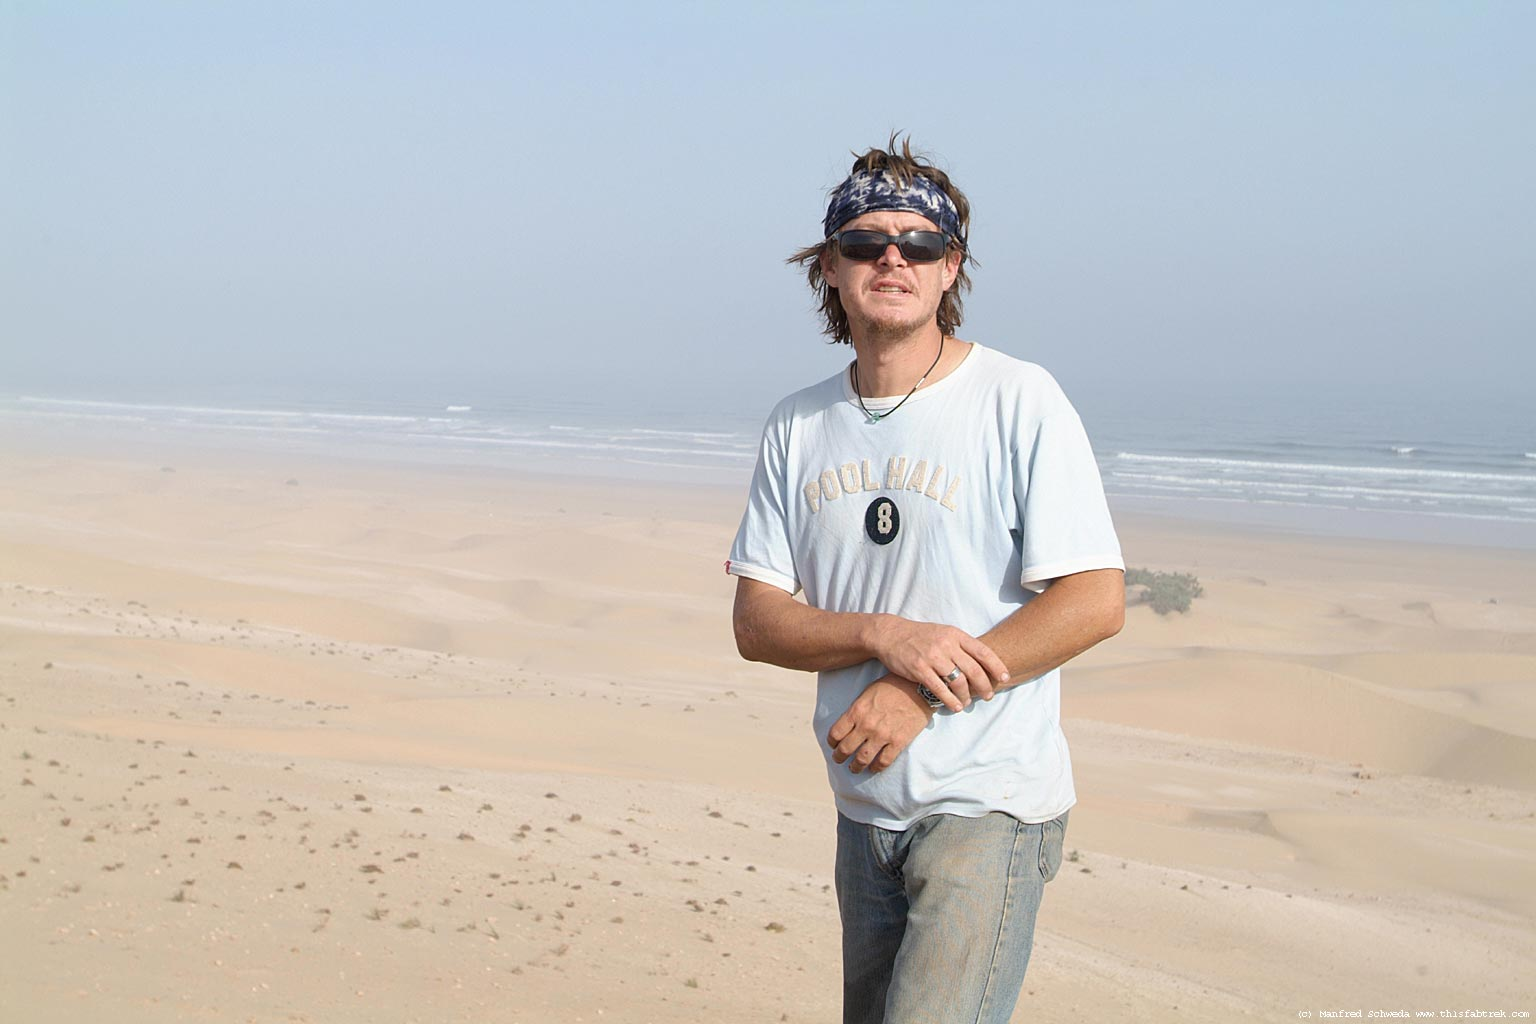 Morocco Plage Blanche Plage Blanche is Blanche And